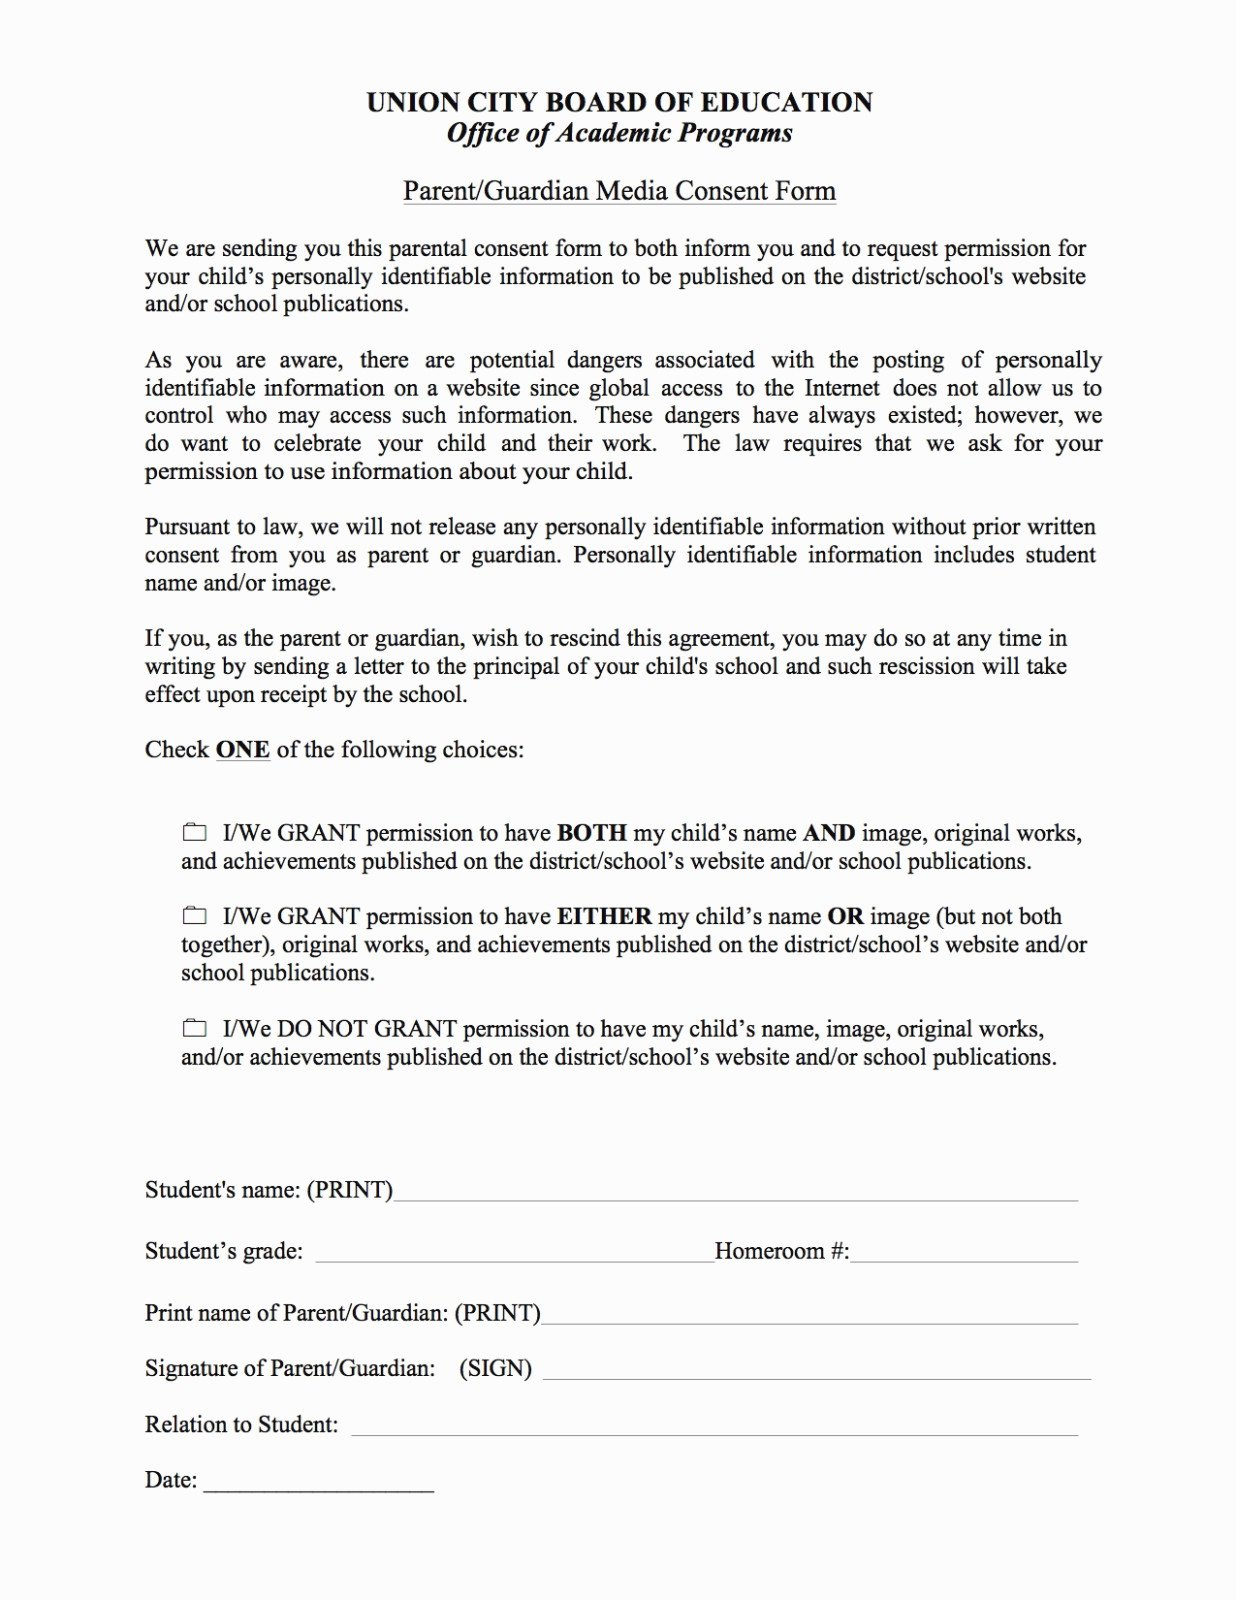 Media Release form Template Luxury 10 Unexpected Ways Media Release form for